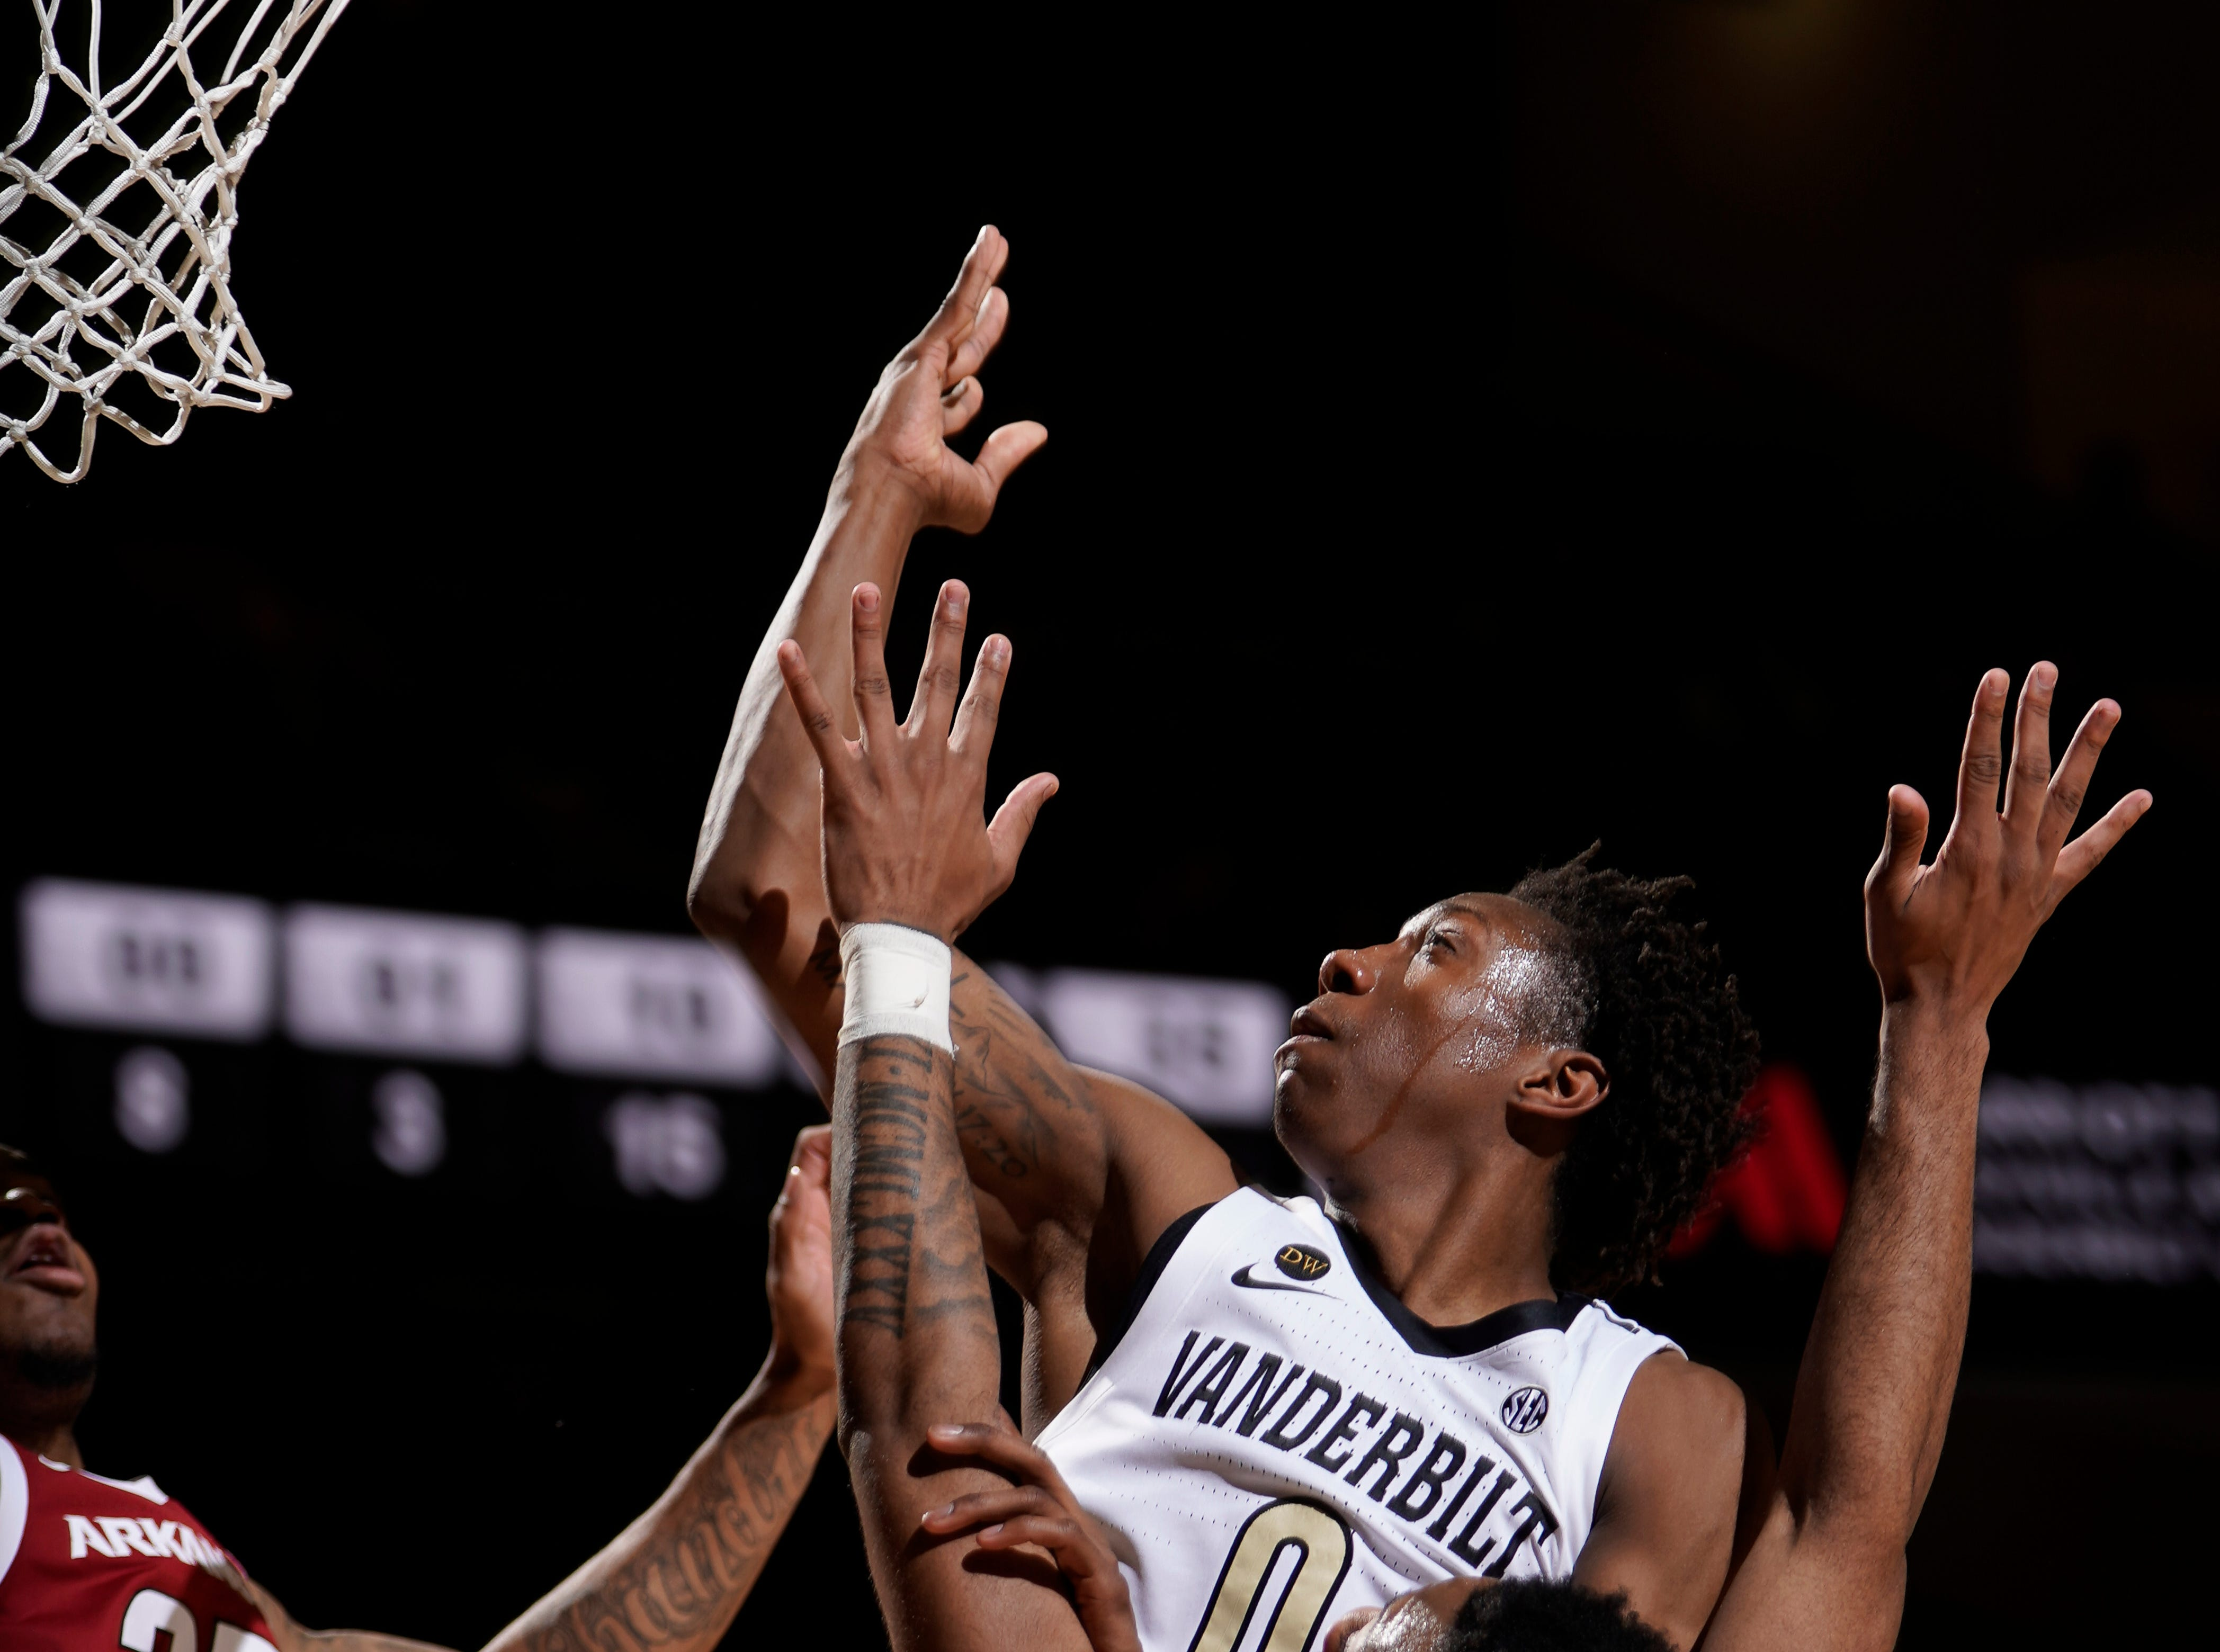 Vanderbilt guard Saben Lee (0) shoots over Arkansas guard Keyshawn Embery-Simpson (11) and forward Reggie Chaney (35) during the second half at Memorial Gym Wednesday, March 6, 2019 in Nashville, Tenn.